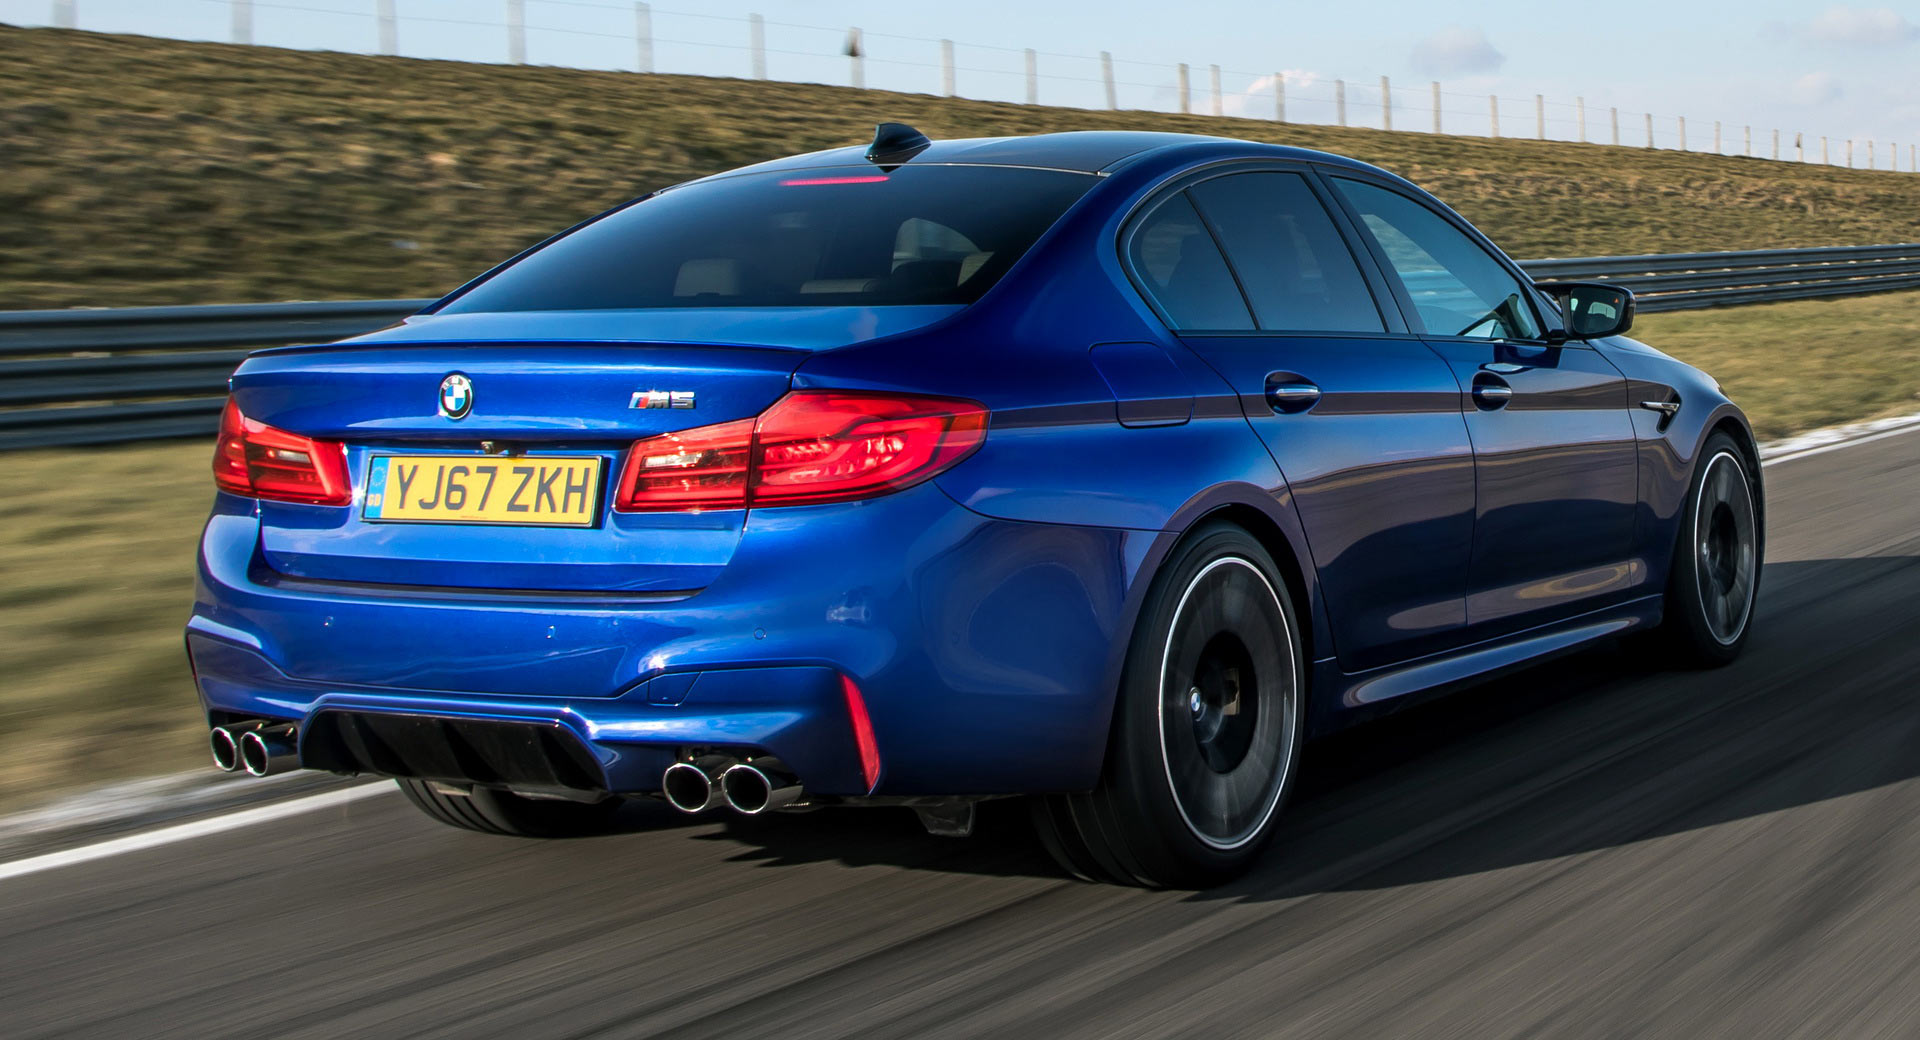 2018 BMW M5 Arrives In The UK Priced From £89,645 | Carscoops